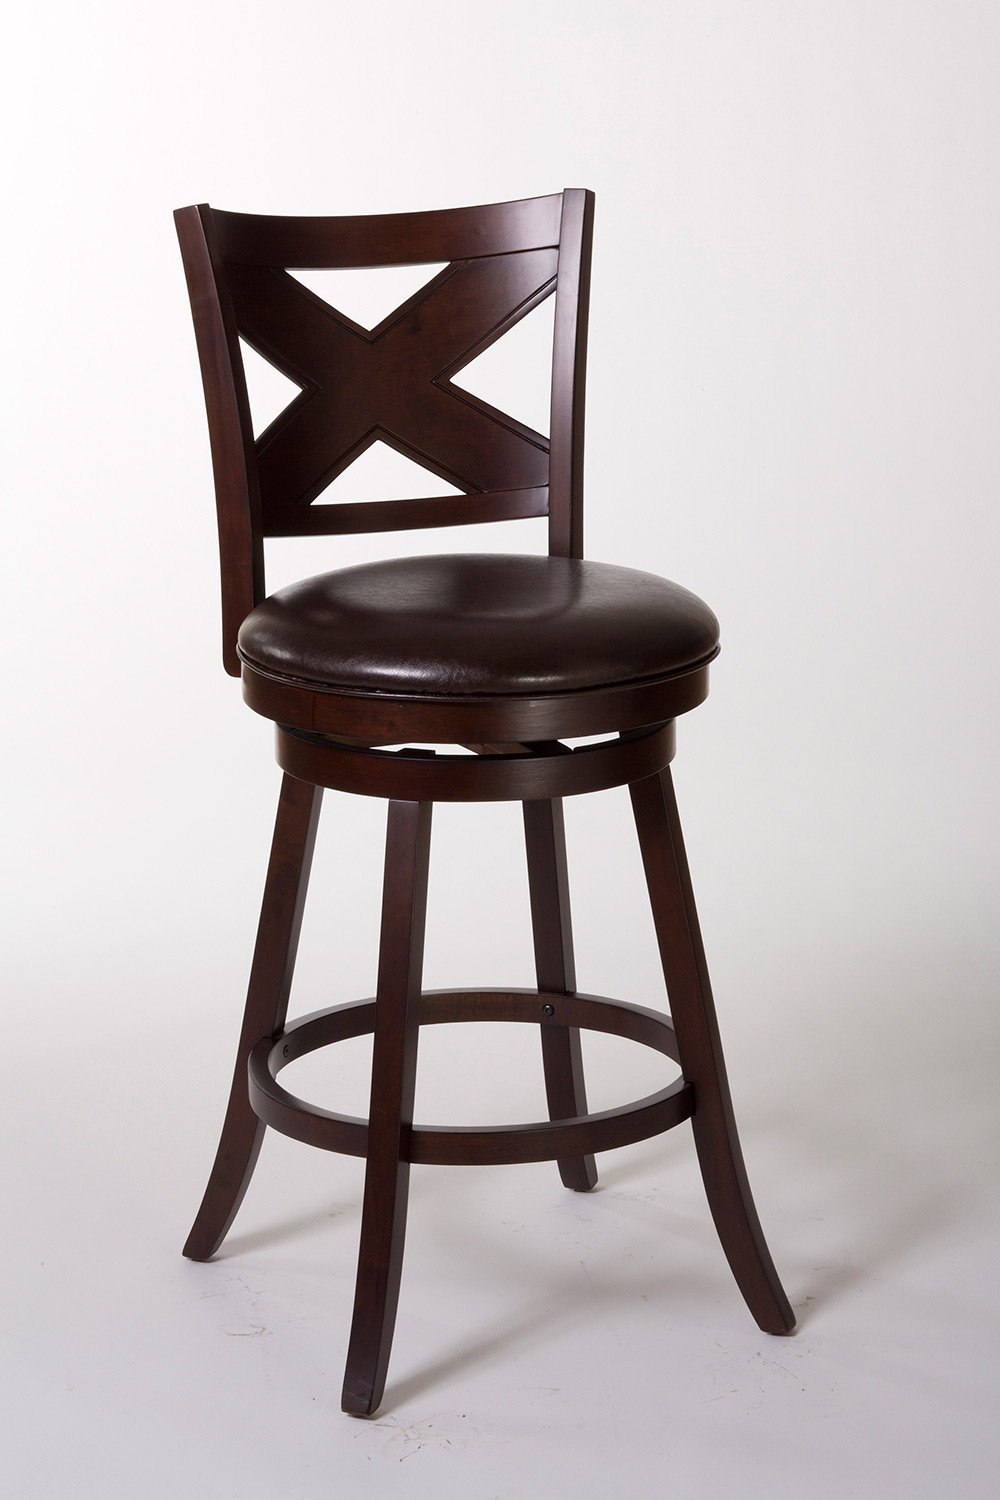 Hillsdale Ashbrook Swivel Bar Stool - Cherry/Brown PU & Hillsdale Ashbrook Swivel Bar Stool - Cherry/Brown PU 5209-830 ... islam-shia.org